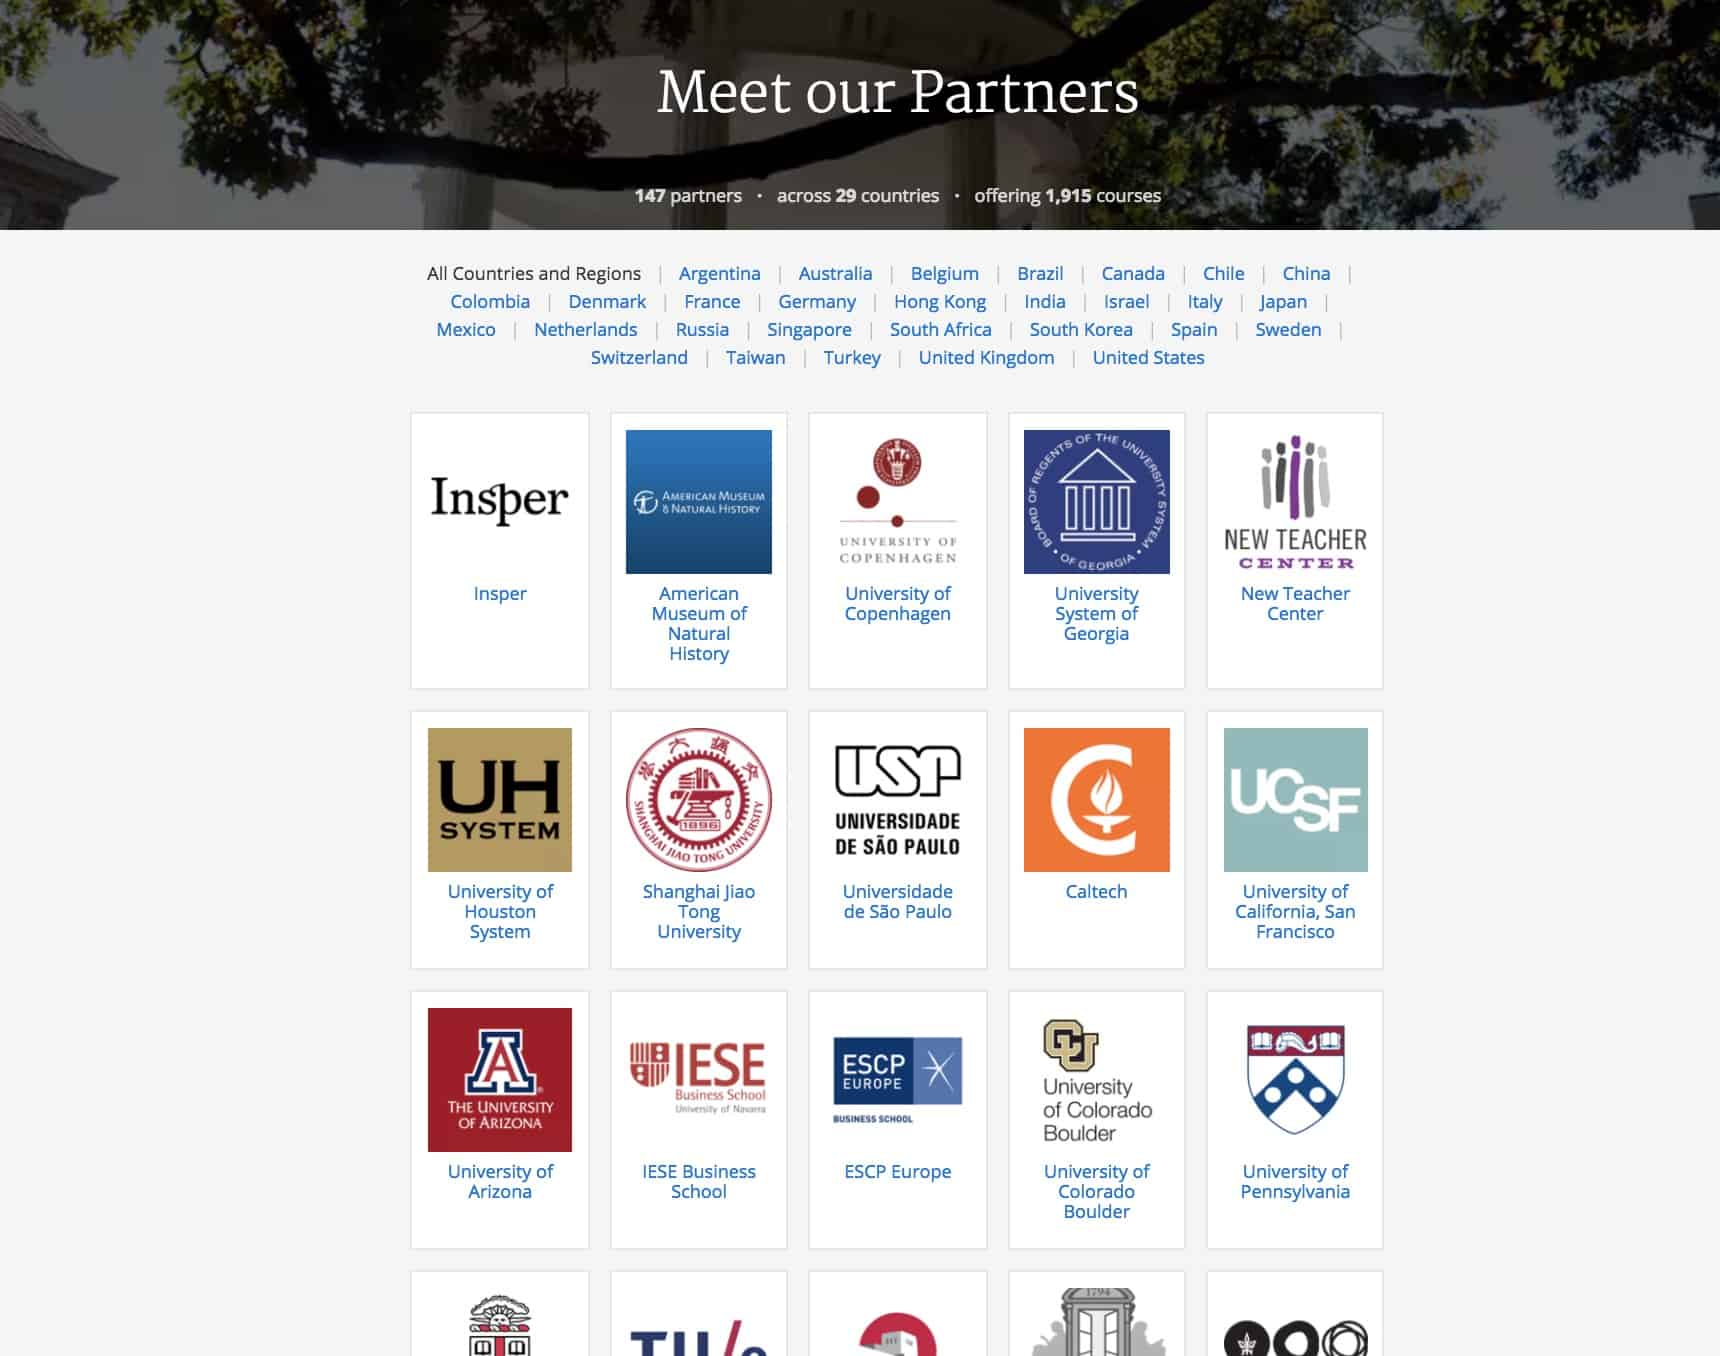 Coursera - Meet our Partners